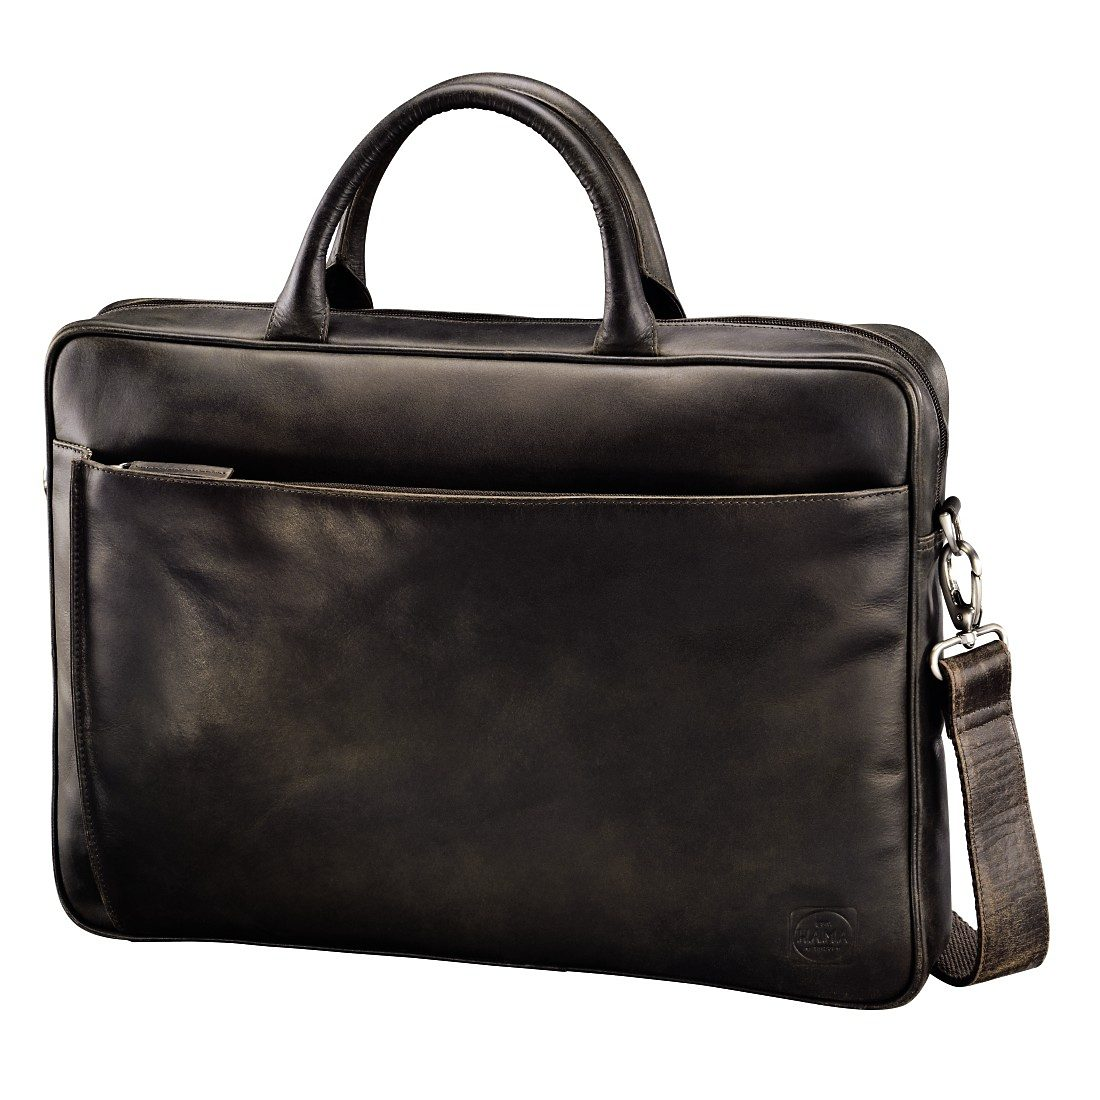 Hama est. 1923 Ledertasche Mathis Paris, Dark Brown